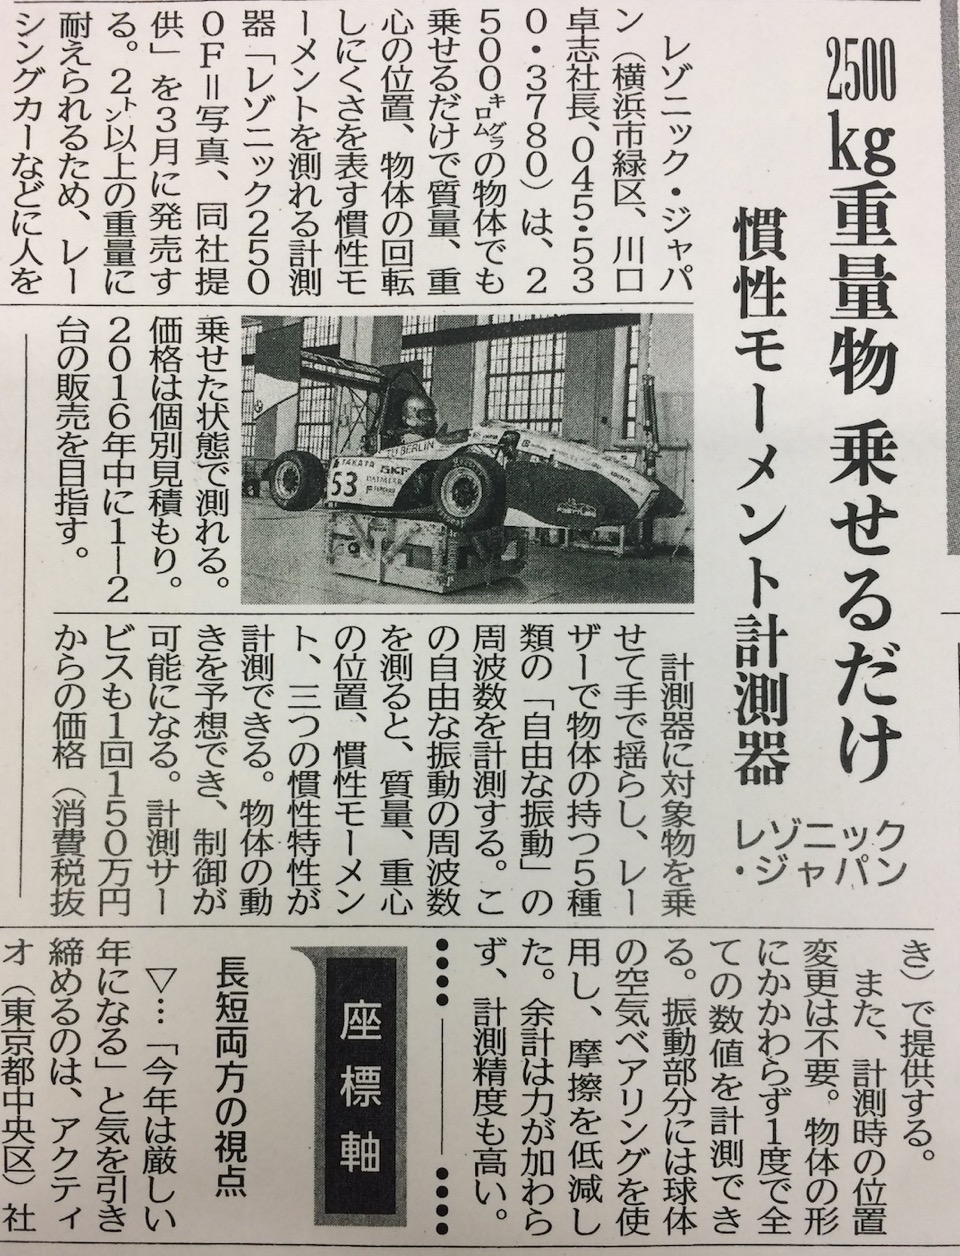 Nikkan Kogyo Shimbun about New Resonic Machine